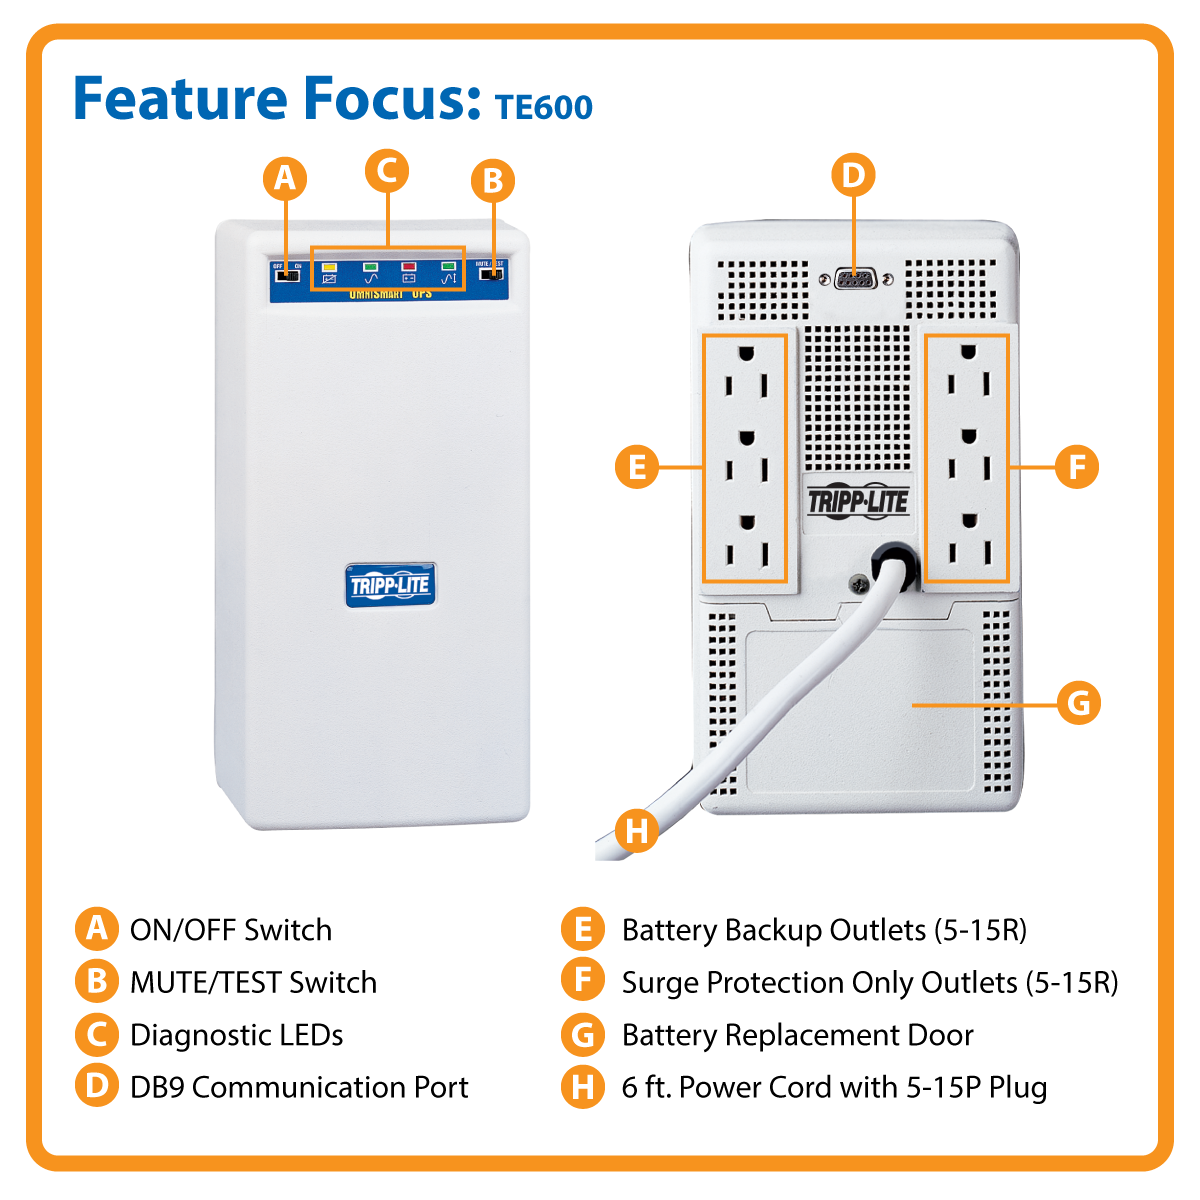 Tripp Lite 600va 425w Ups Tower Avr 120v Db9 5 15r 6 Outlet 15p Switch Wiring1 Diagram Diagosis Media